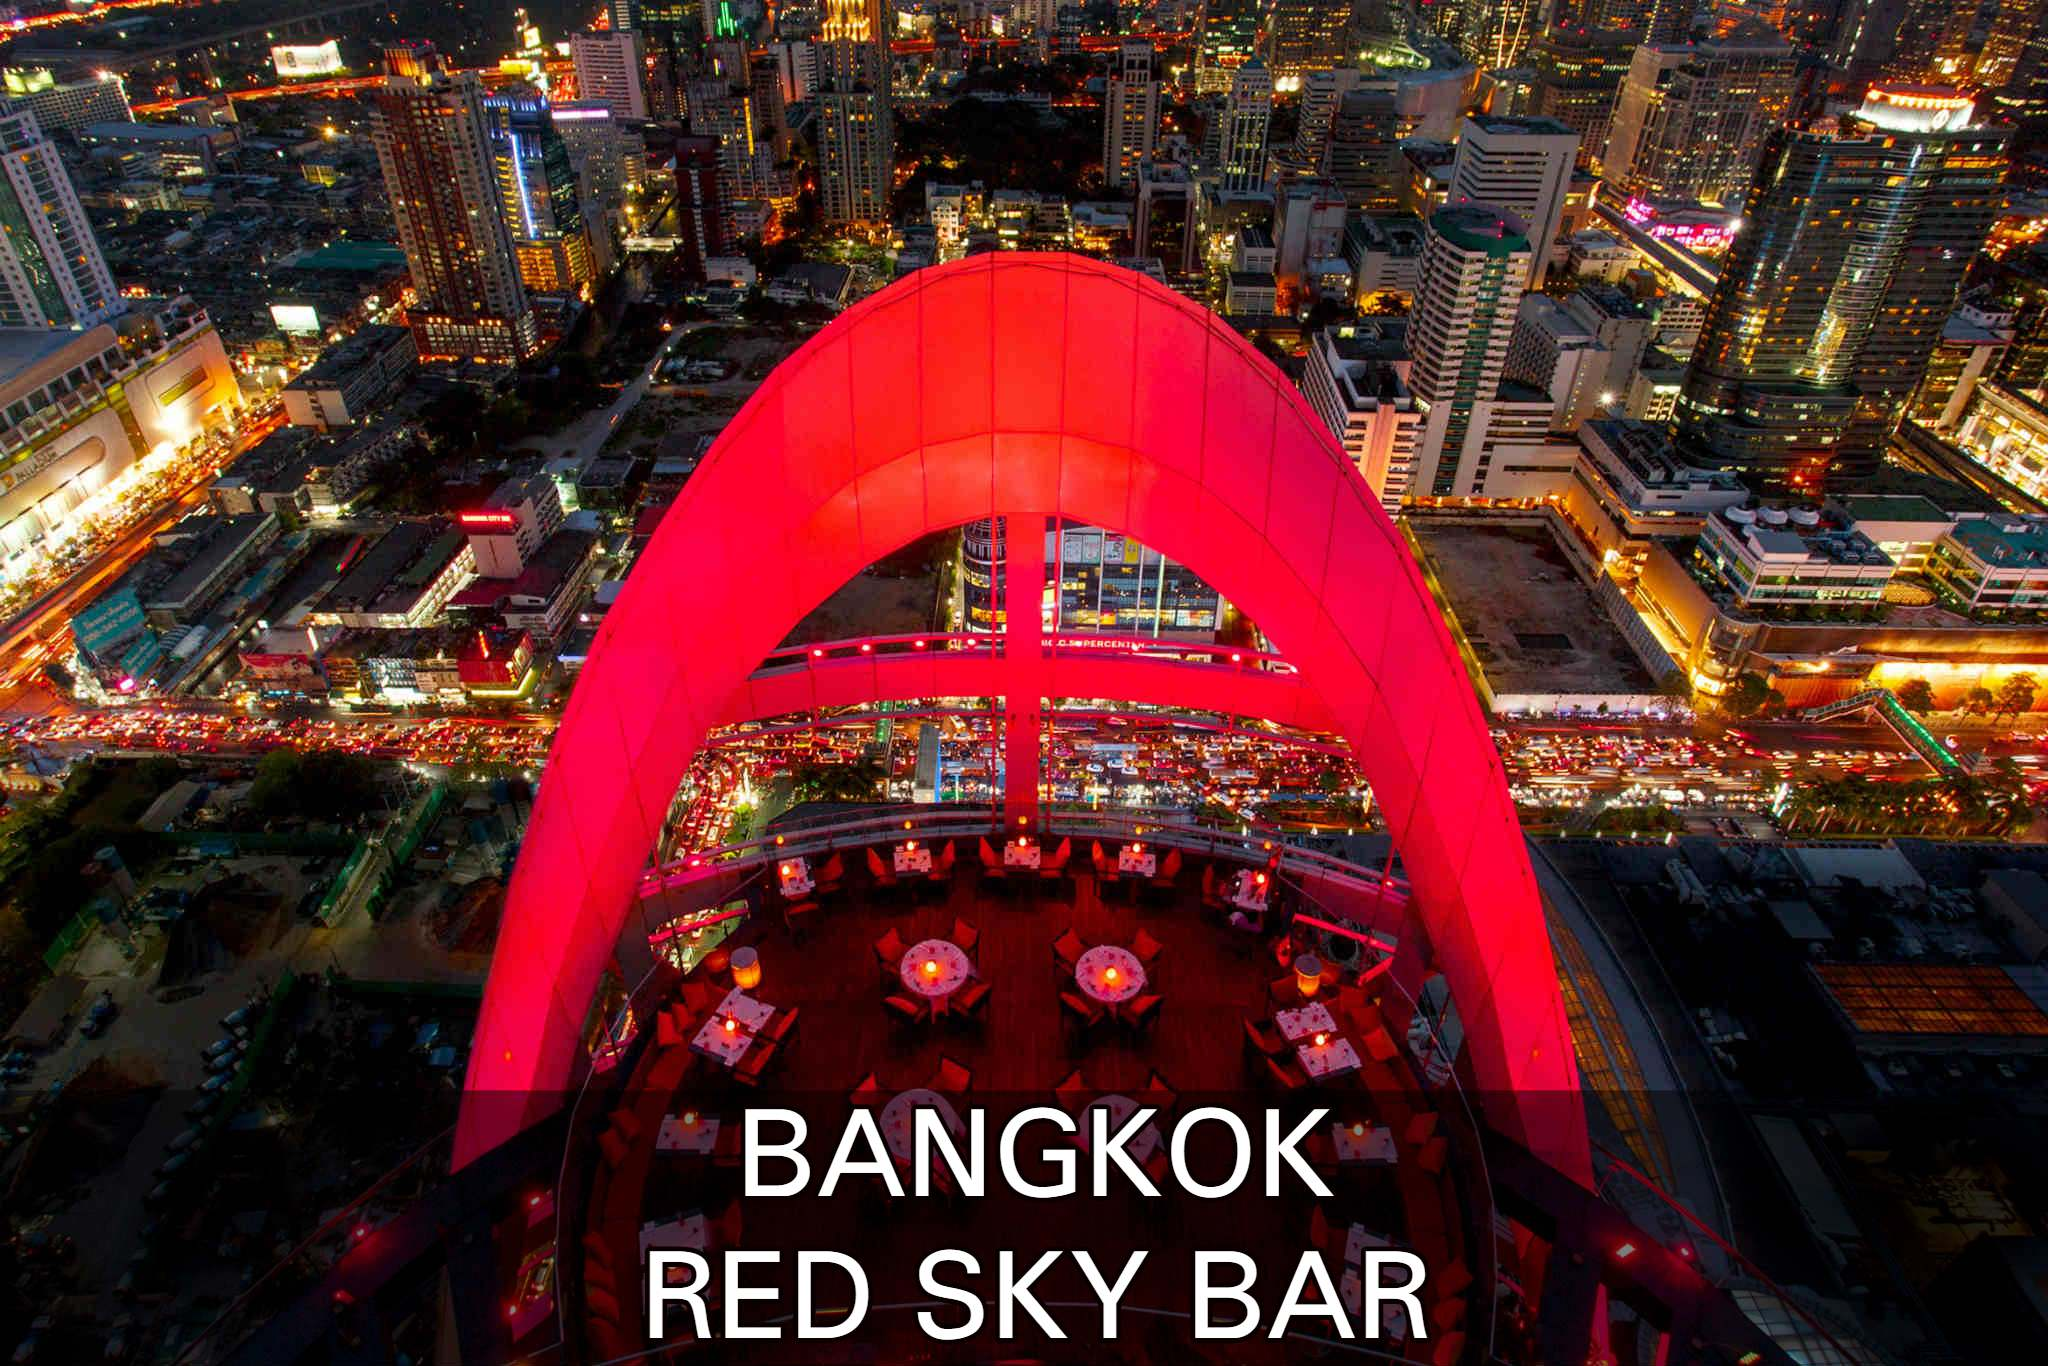 Lees hier alles over de sky bar Red Sky in Bangkok, Thailand.